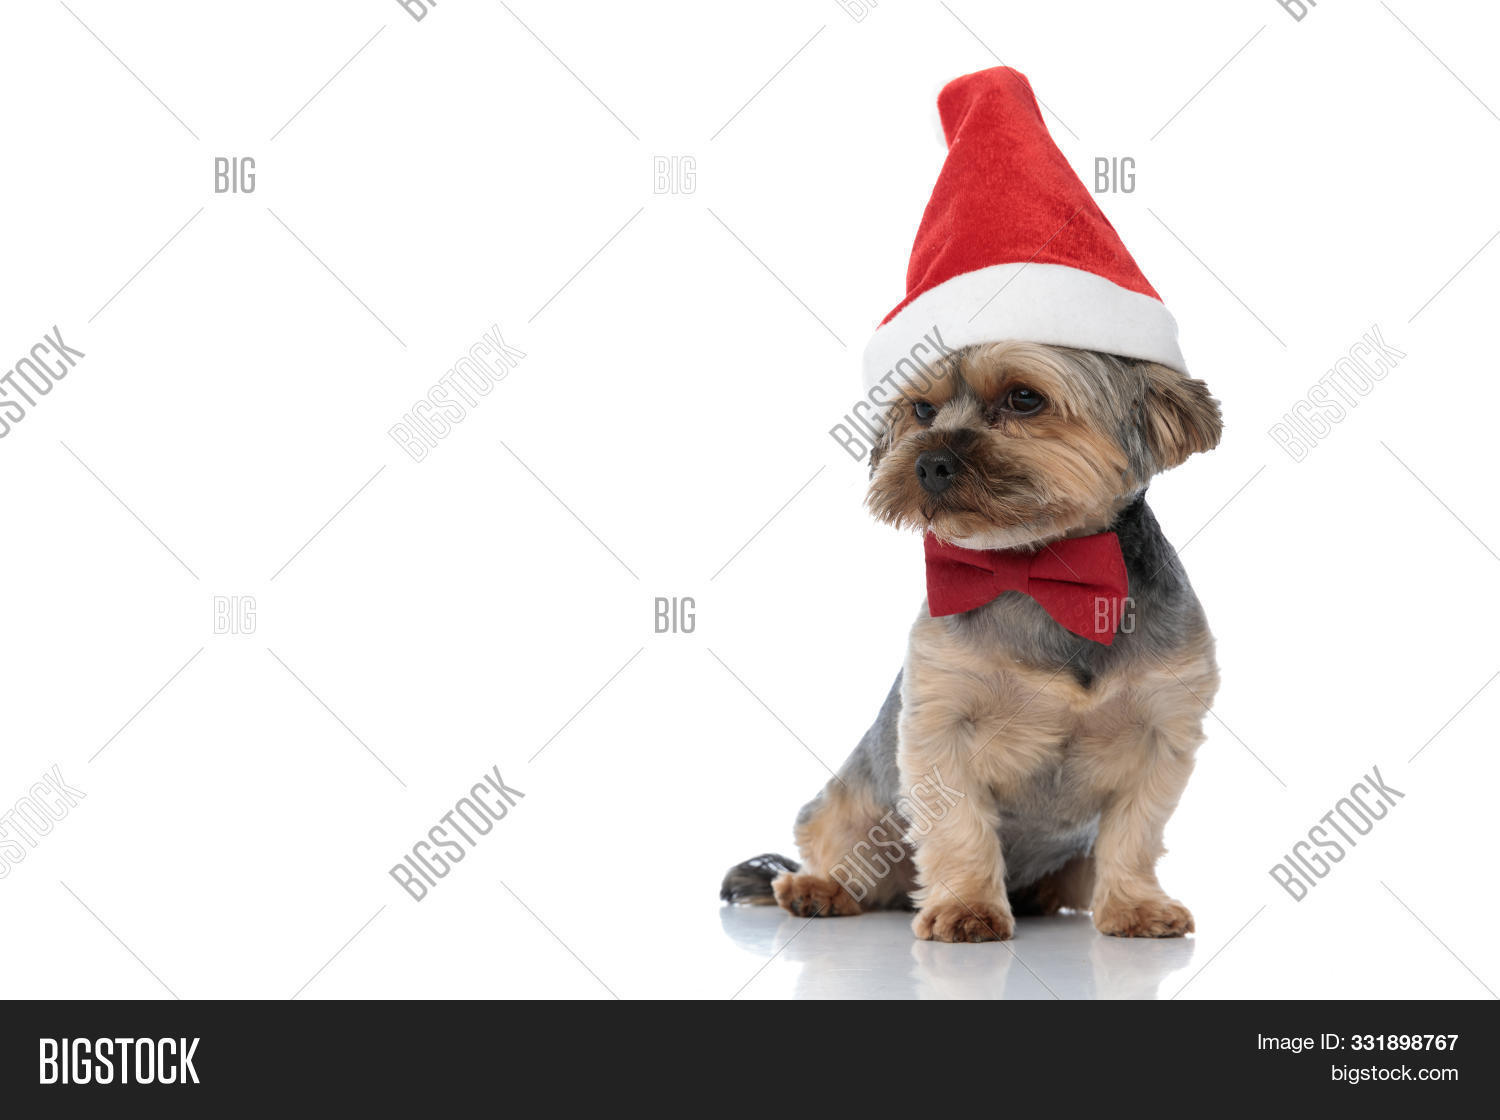 adorable,animal,away,background,bow,bow tie,bowtie,breed,brown,canine,cap,christmas,costume,cute,dog,domestic,dreaming,fur,happy,hat,holiday,isolated,little,looking,merry,neck,pensive,pet,puppy,red,santa,santa claus,seated,side,sitting,small,studio,terrier,thinking,thoughtful,tie,wearing,white,wonderful,wondering,yorkie,yorkshire,yorkshire terrier